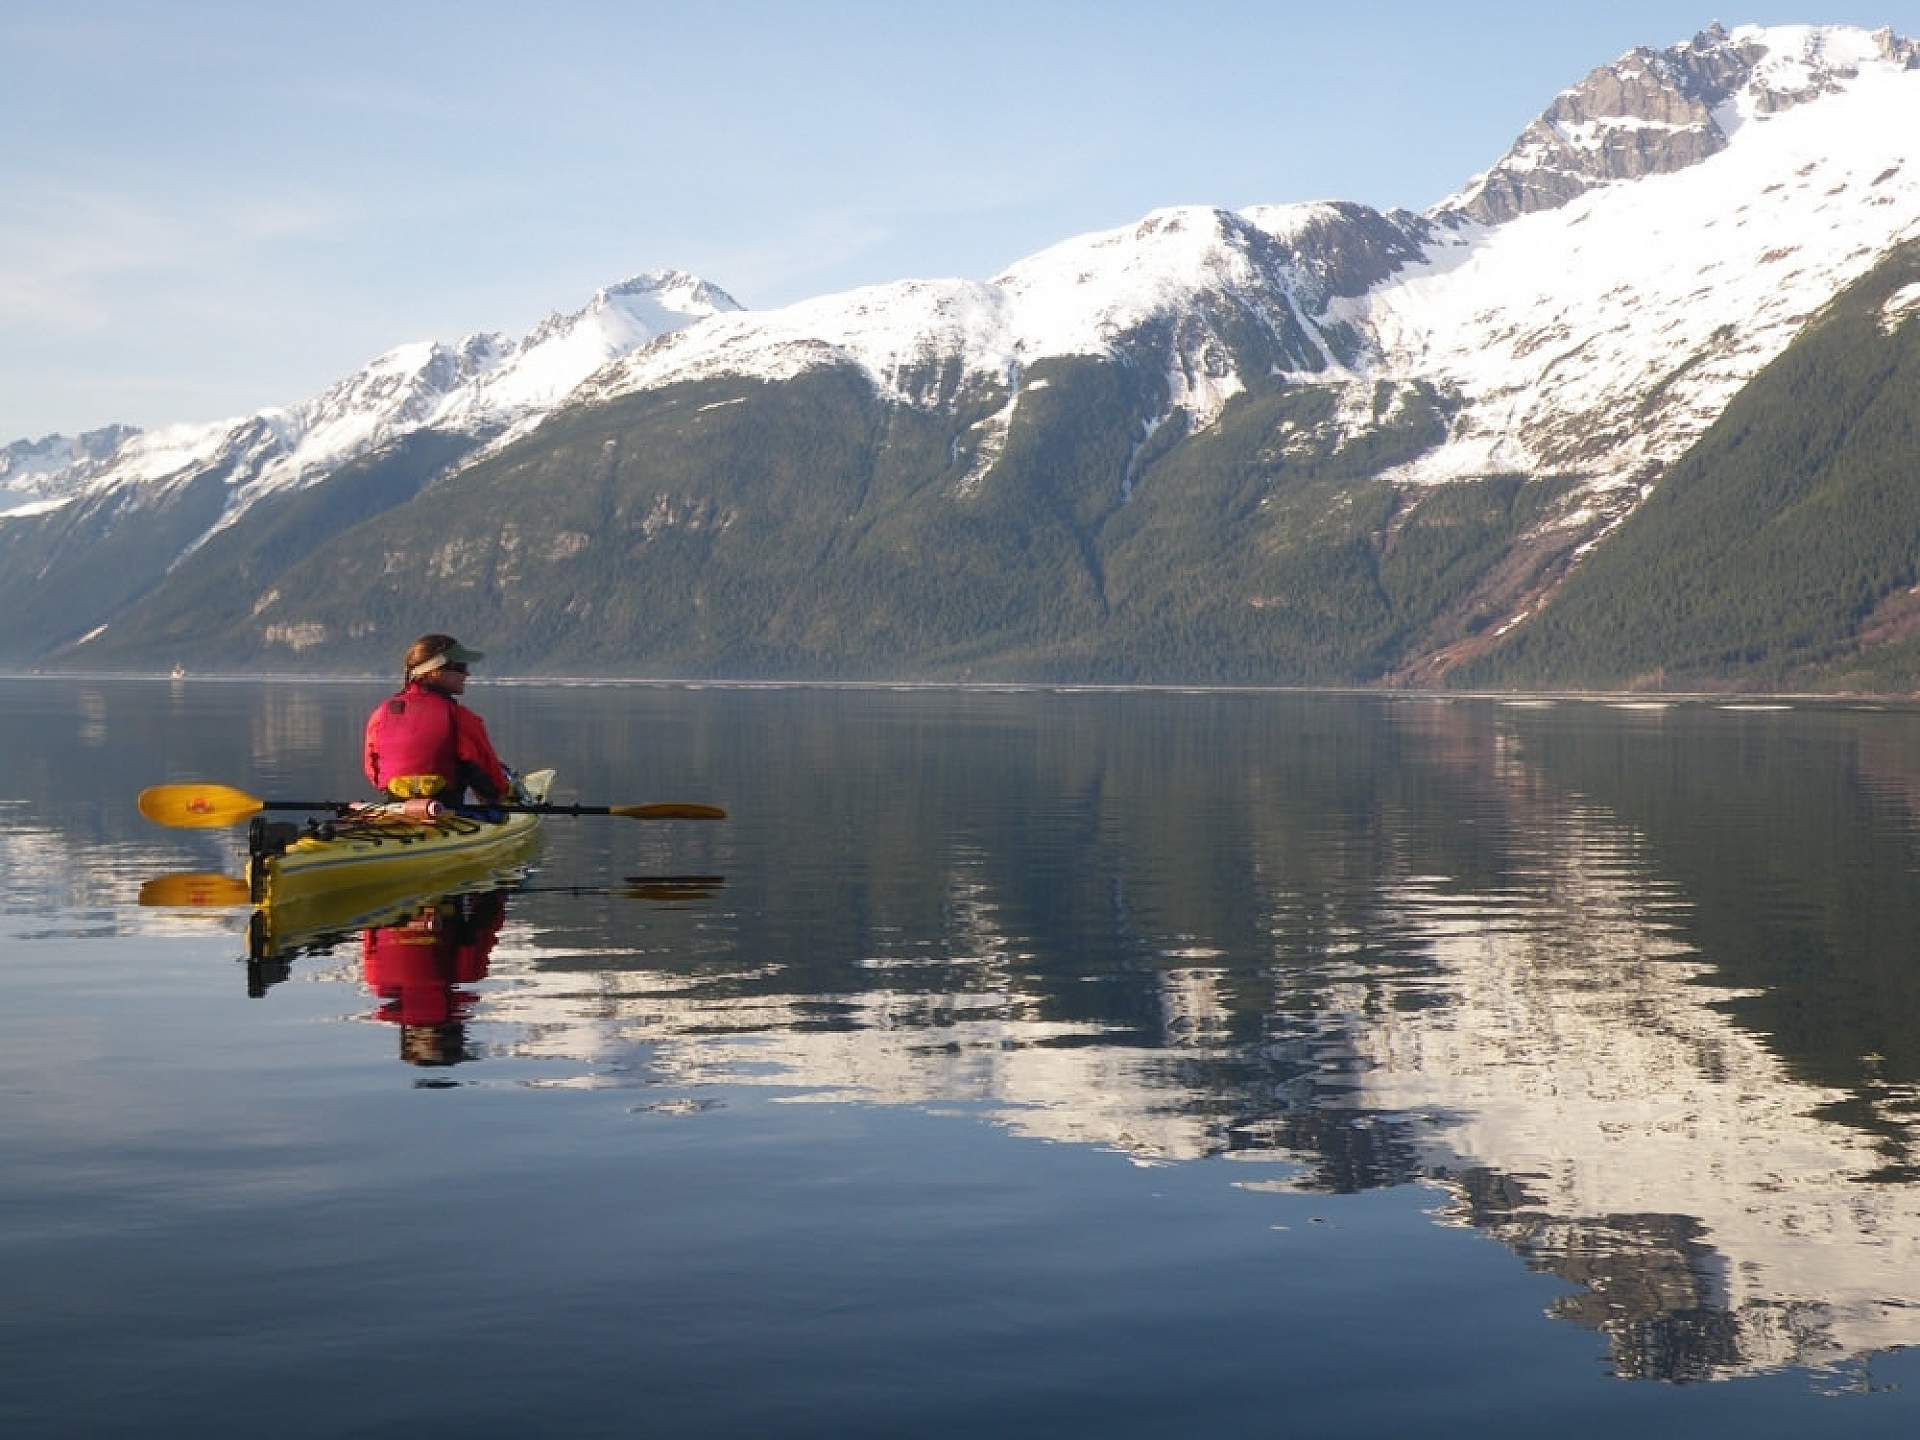 A person in a kayak on the water with snow capped mountains in the background